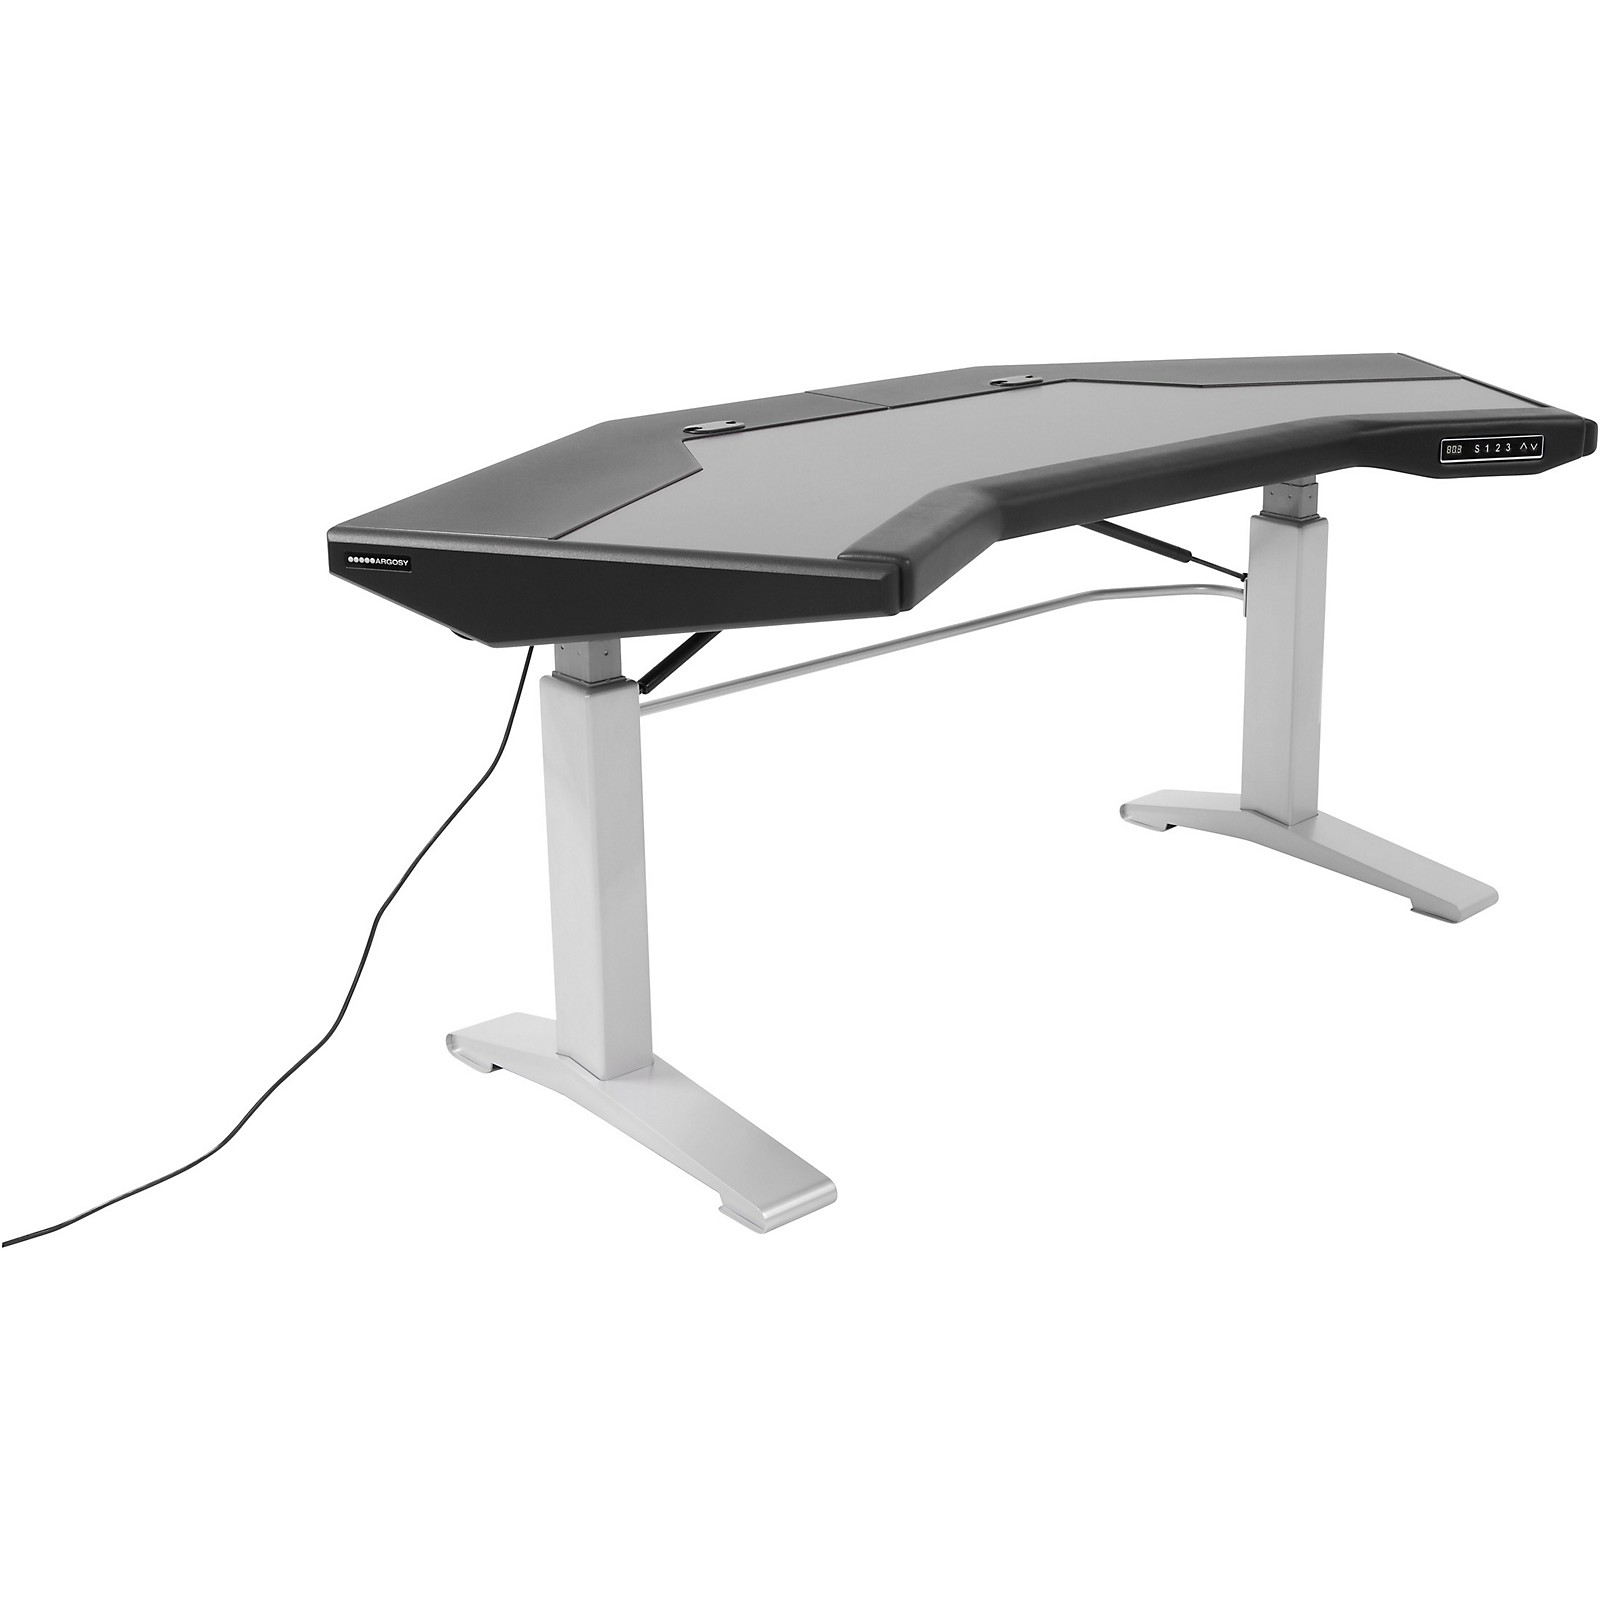 Argosy Halo G Height Adjustable Desk